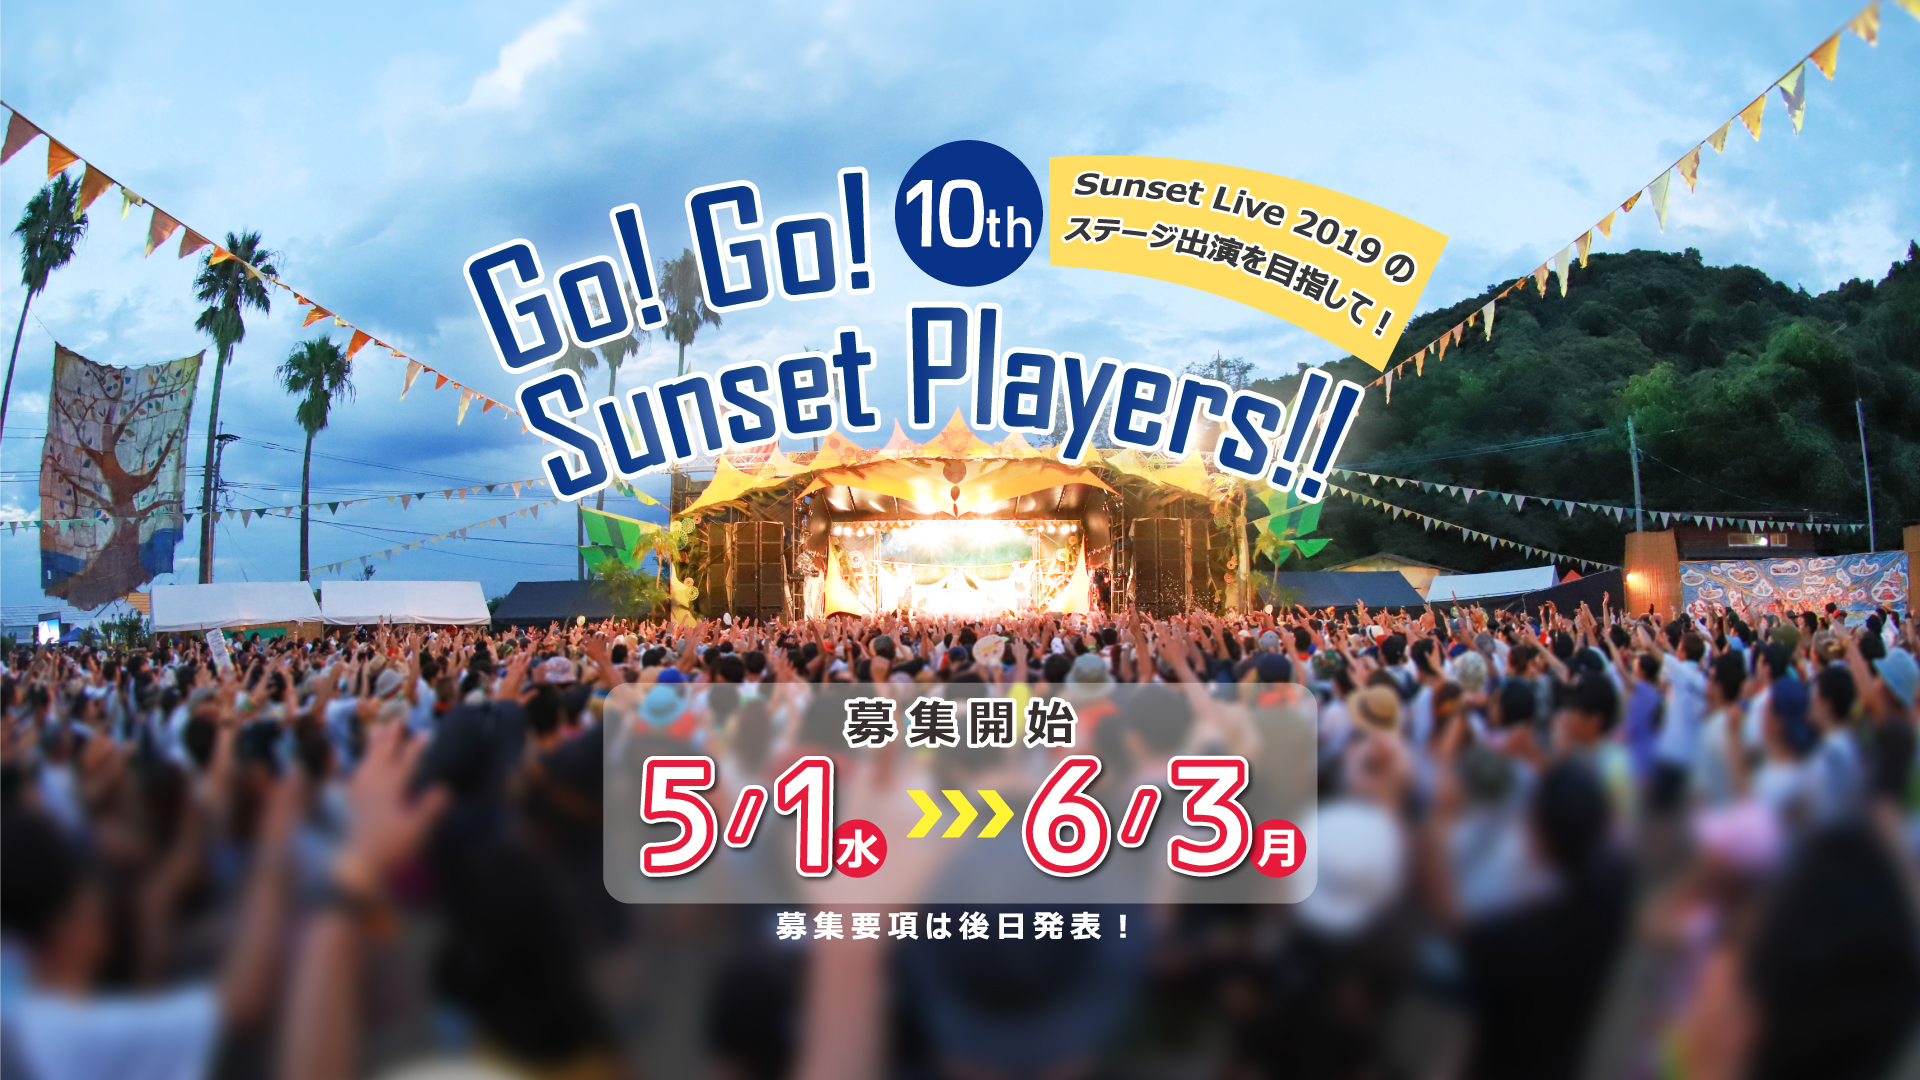 Go!Go!Sunset Players!!募集開始!